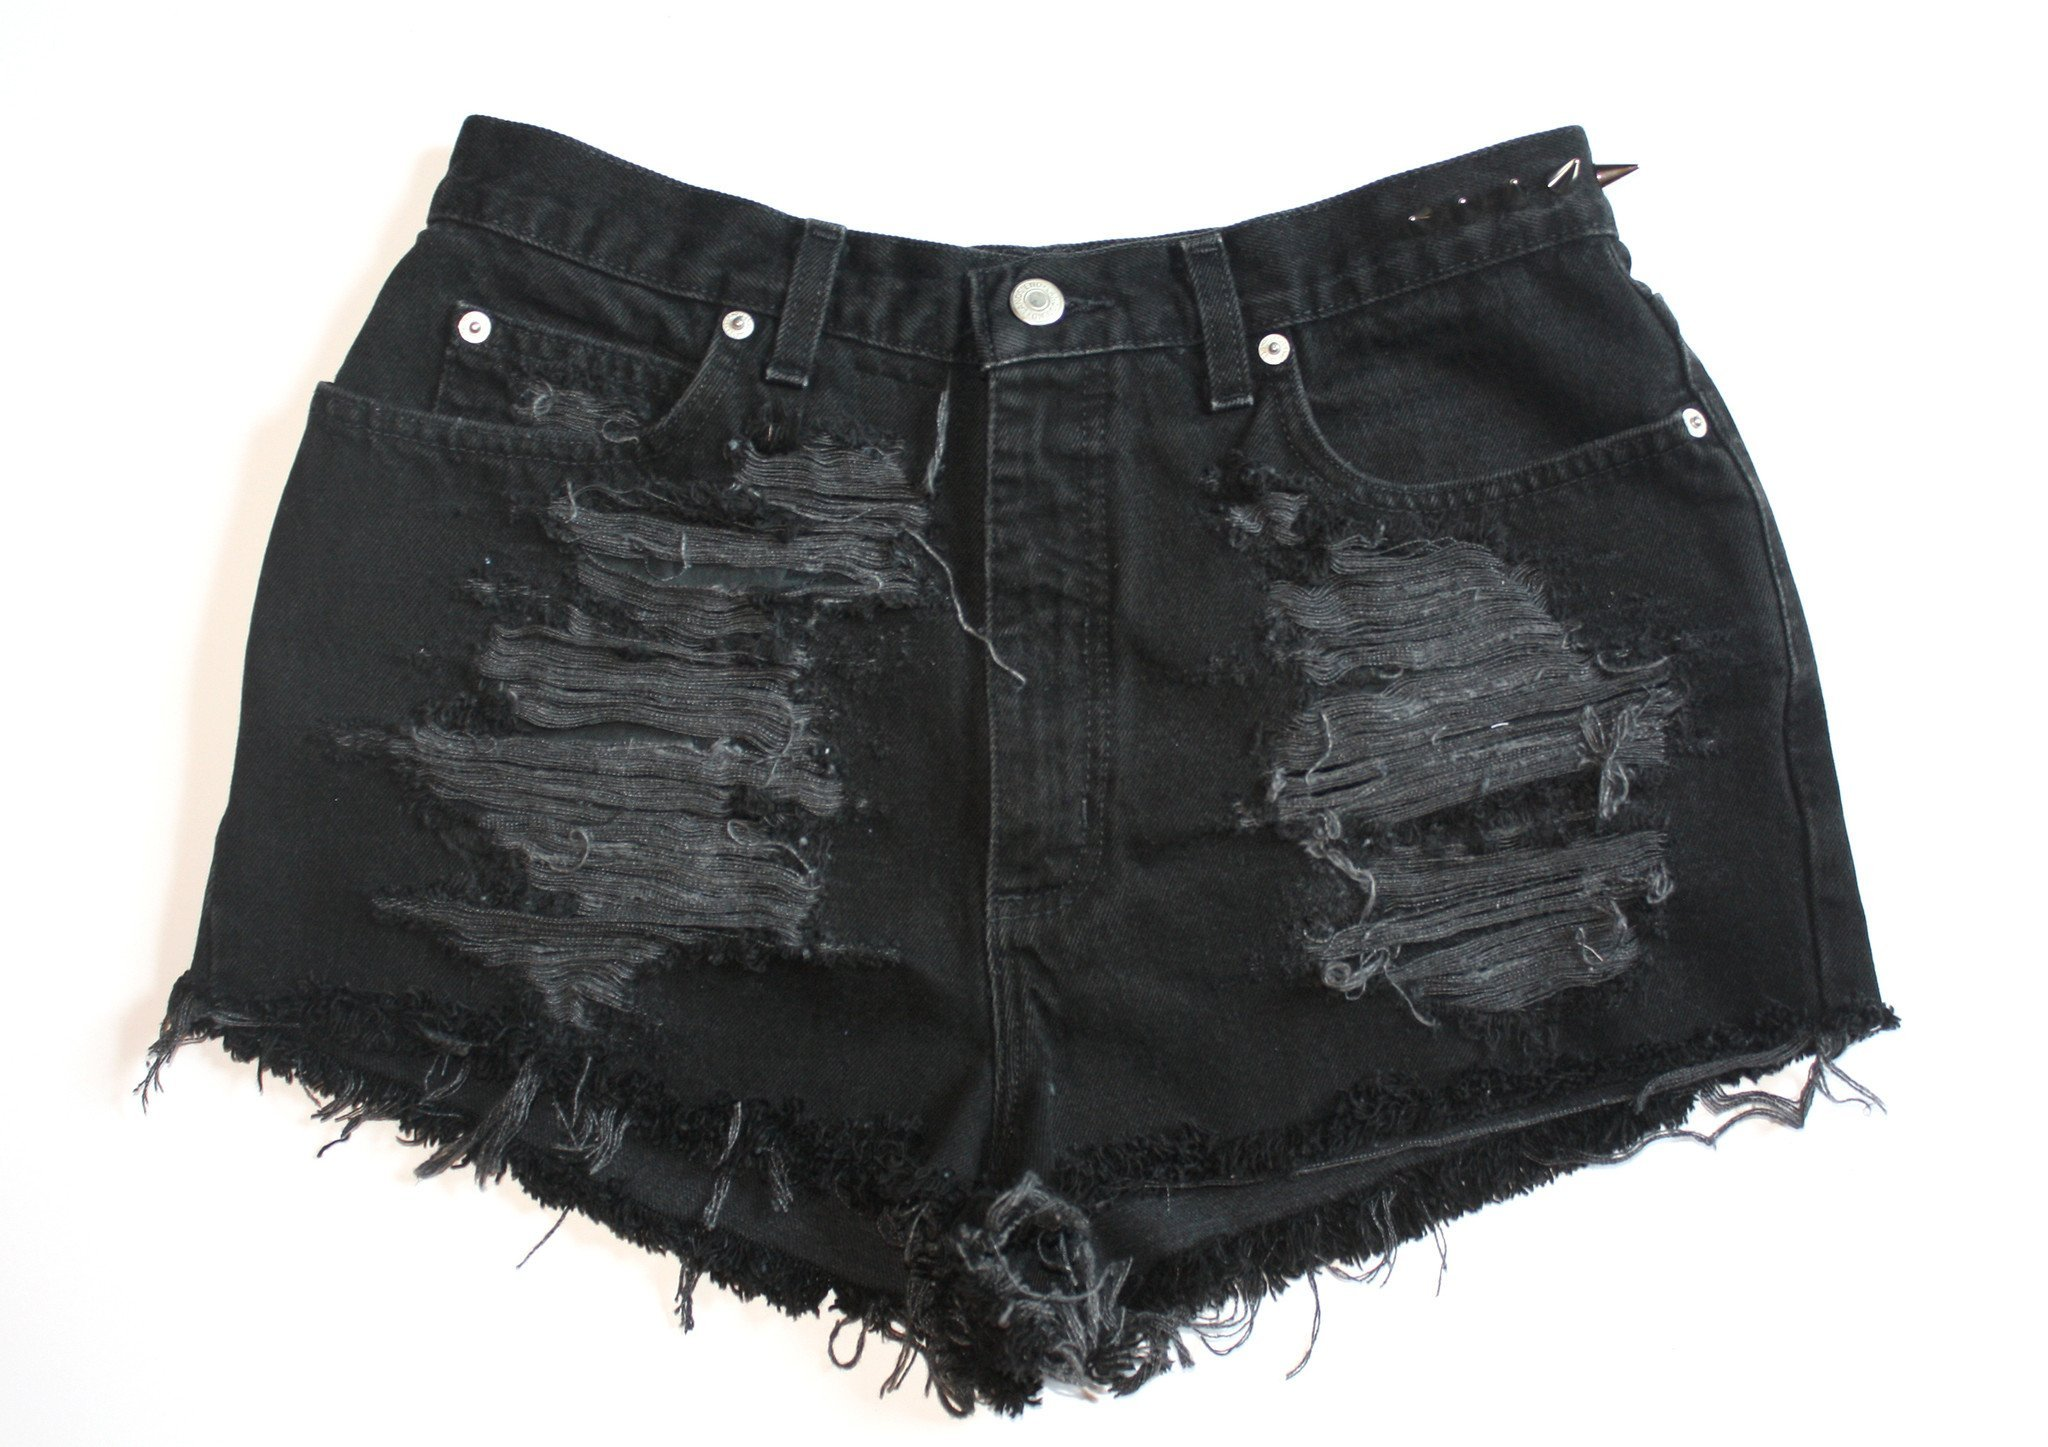 Image of Black High Waisted Vintage Denim Shorts With Spikes